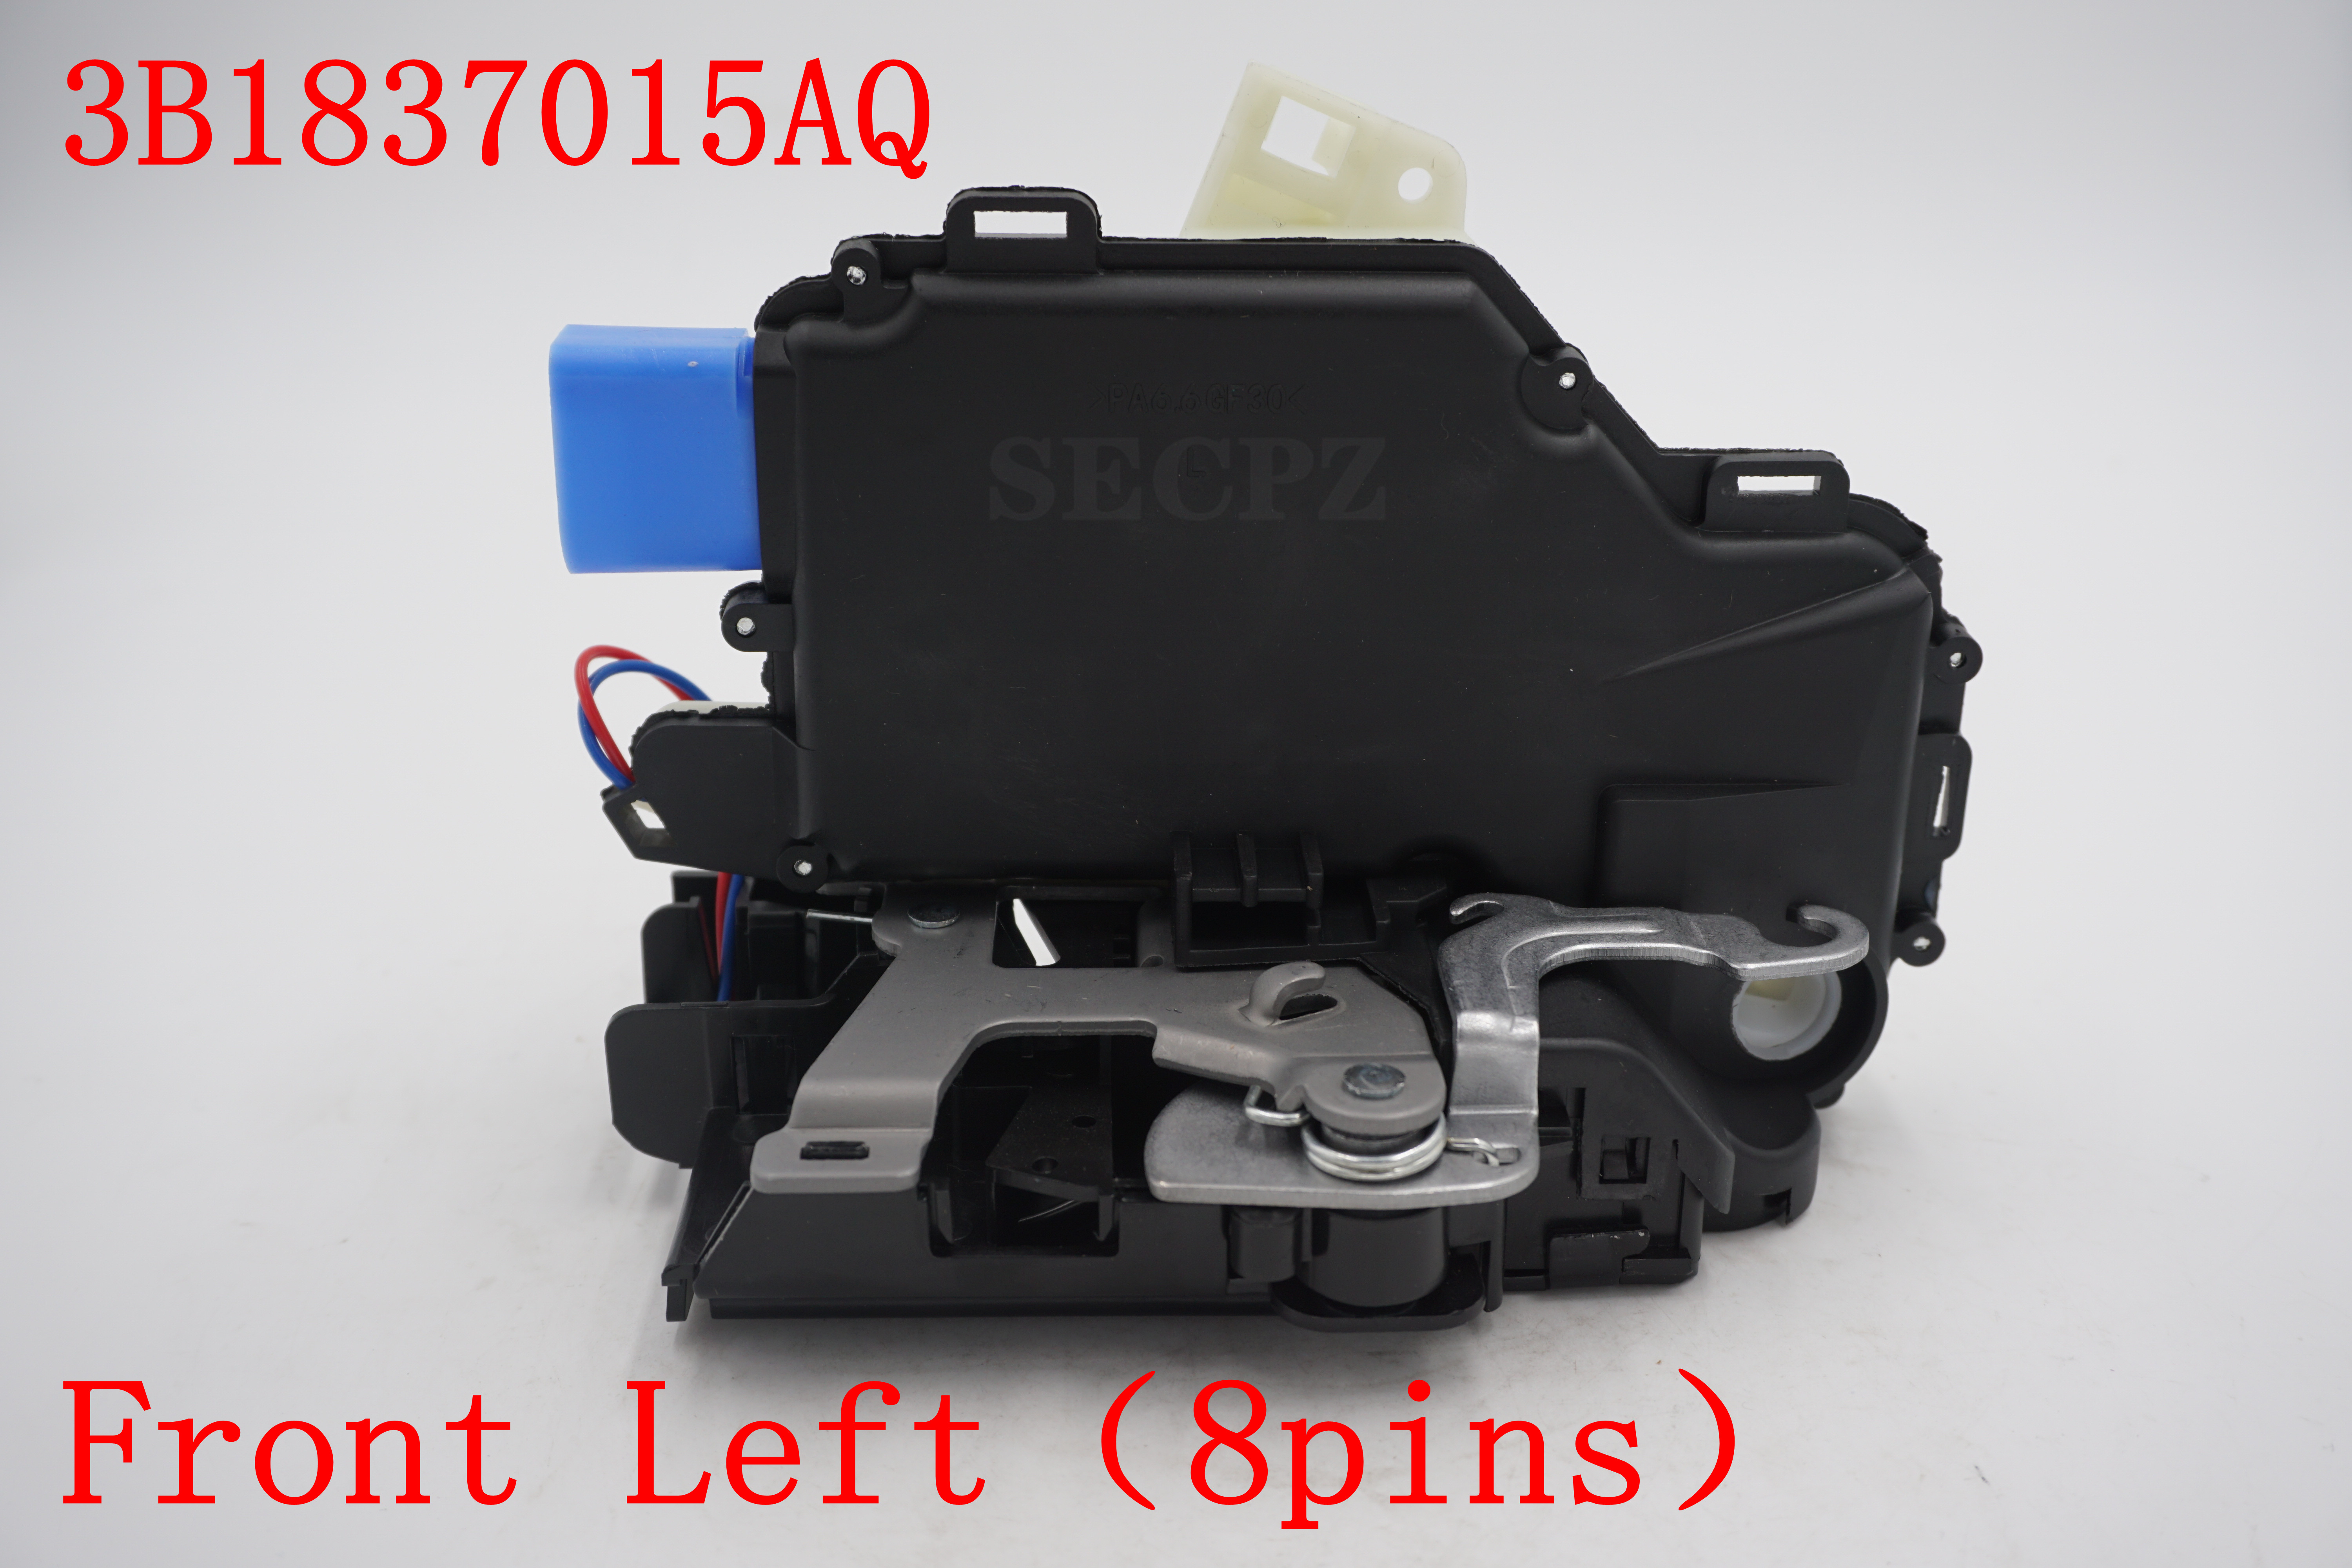 FRONT LEFT Central Lock Actuator 3B1837015AQ 3B1837015BC 5J1837015 6QD837015B 3B1837015AR FOR VW T5 POLO SKODA FABIA ROOMSTER